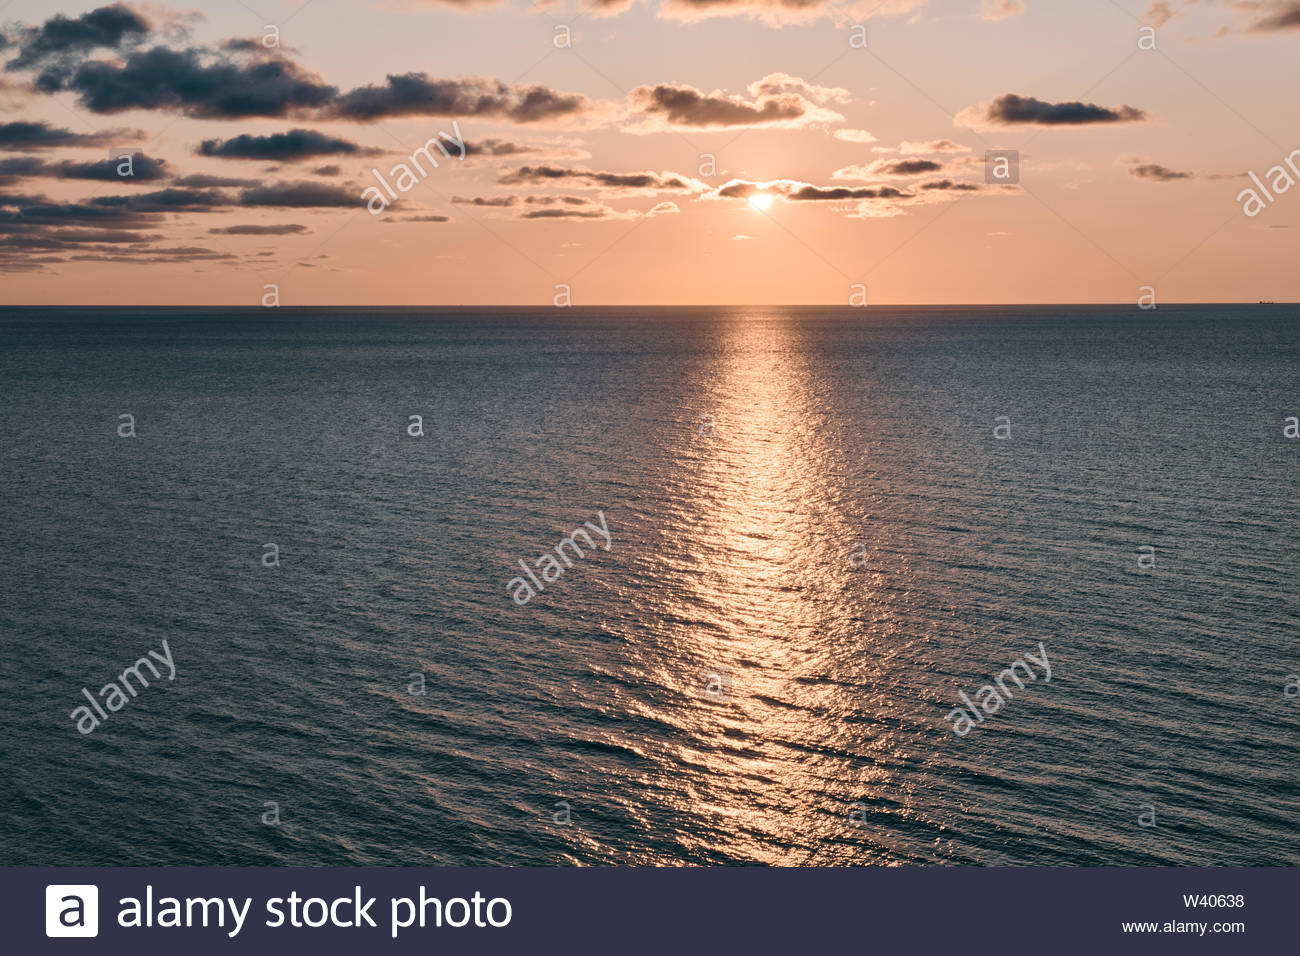 Dramatic skies over the blue sea just before sunset in northern Denmark. - Stock Image